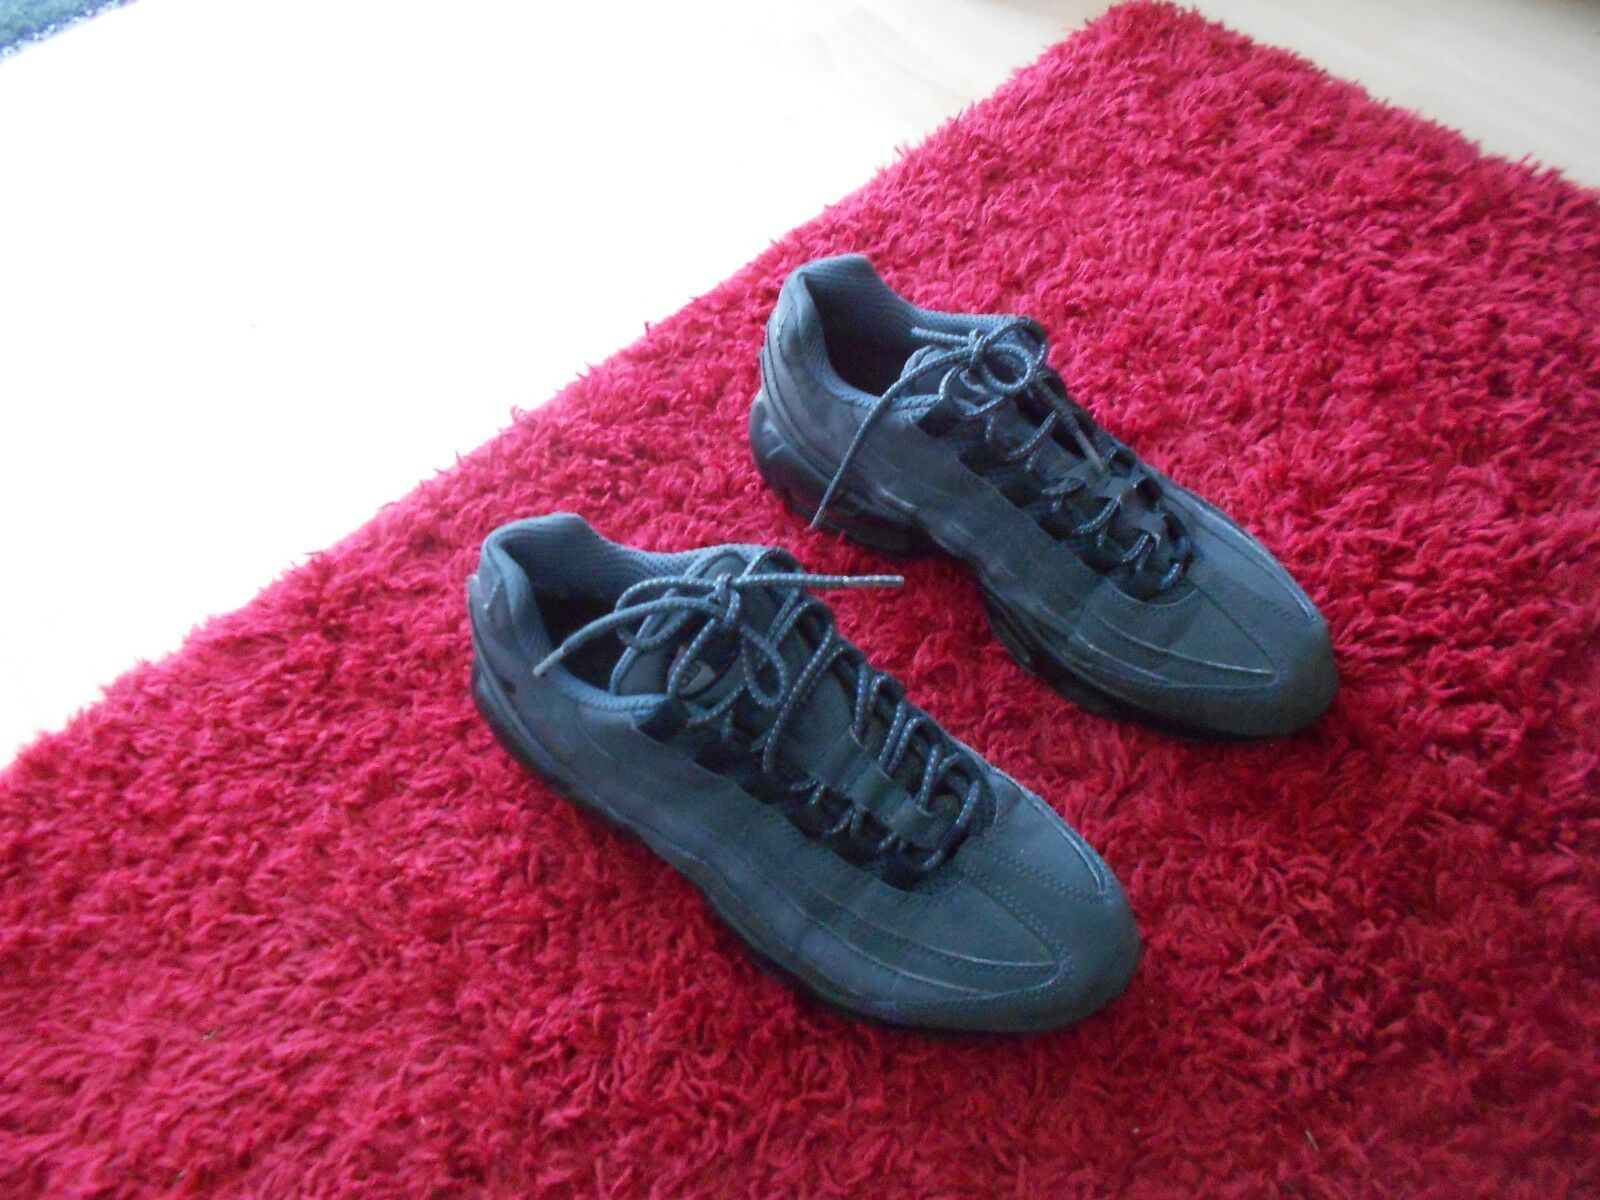 NIKE AIR MAX 95 ESSENTIAL TRAINERS UK SIZE 9 - GREY - IN A GOODISH COND STILL